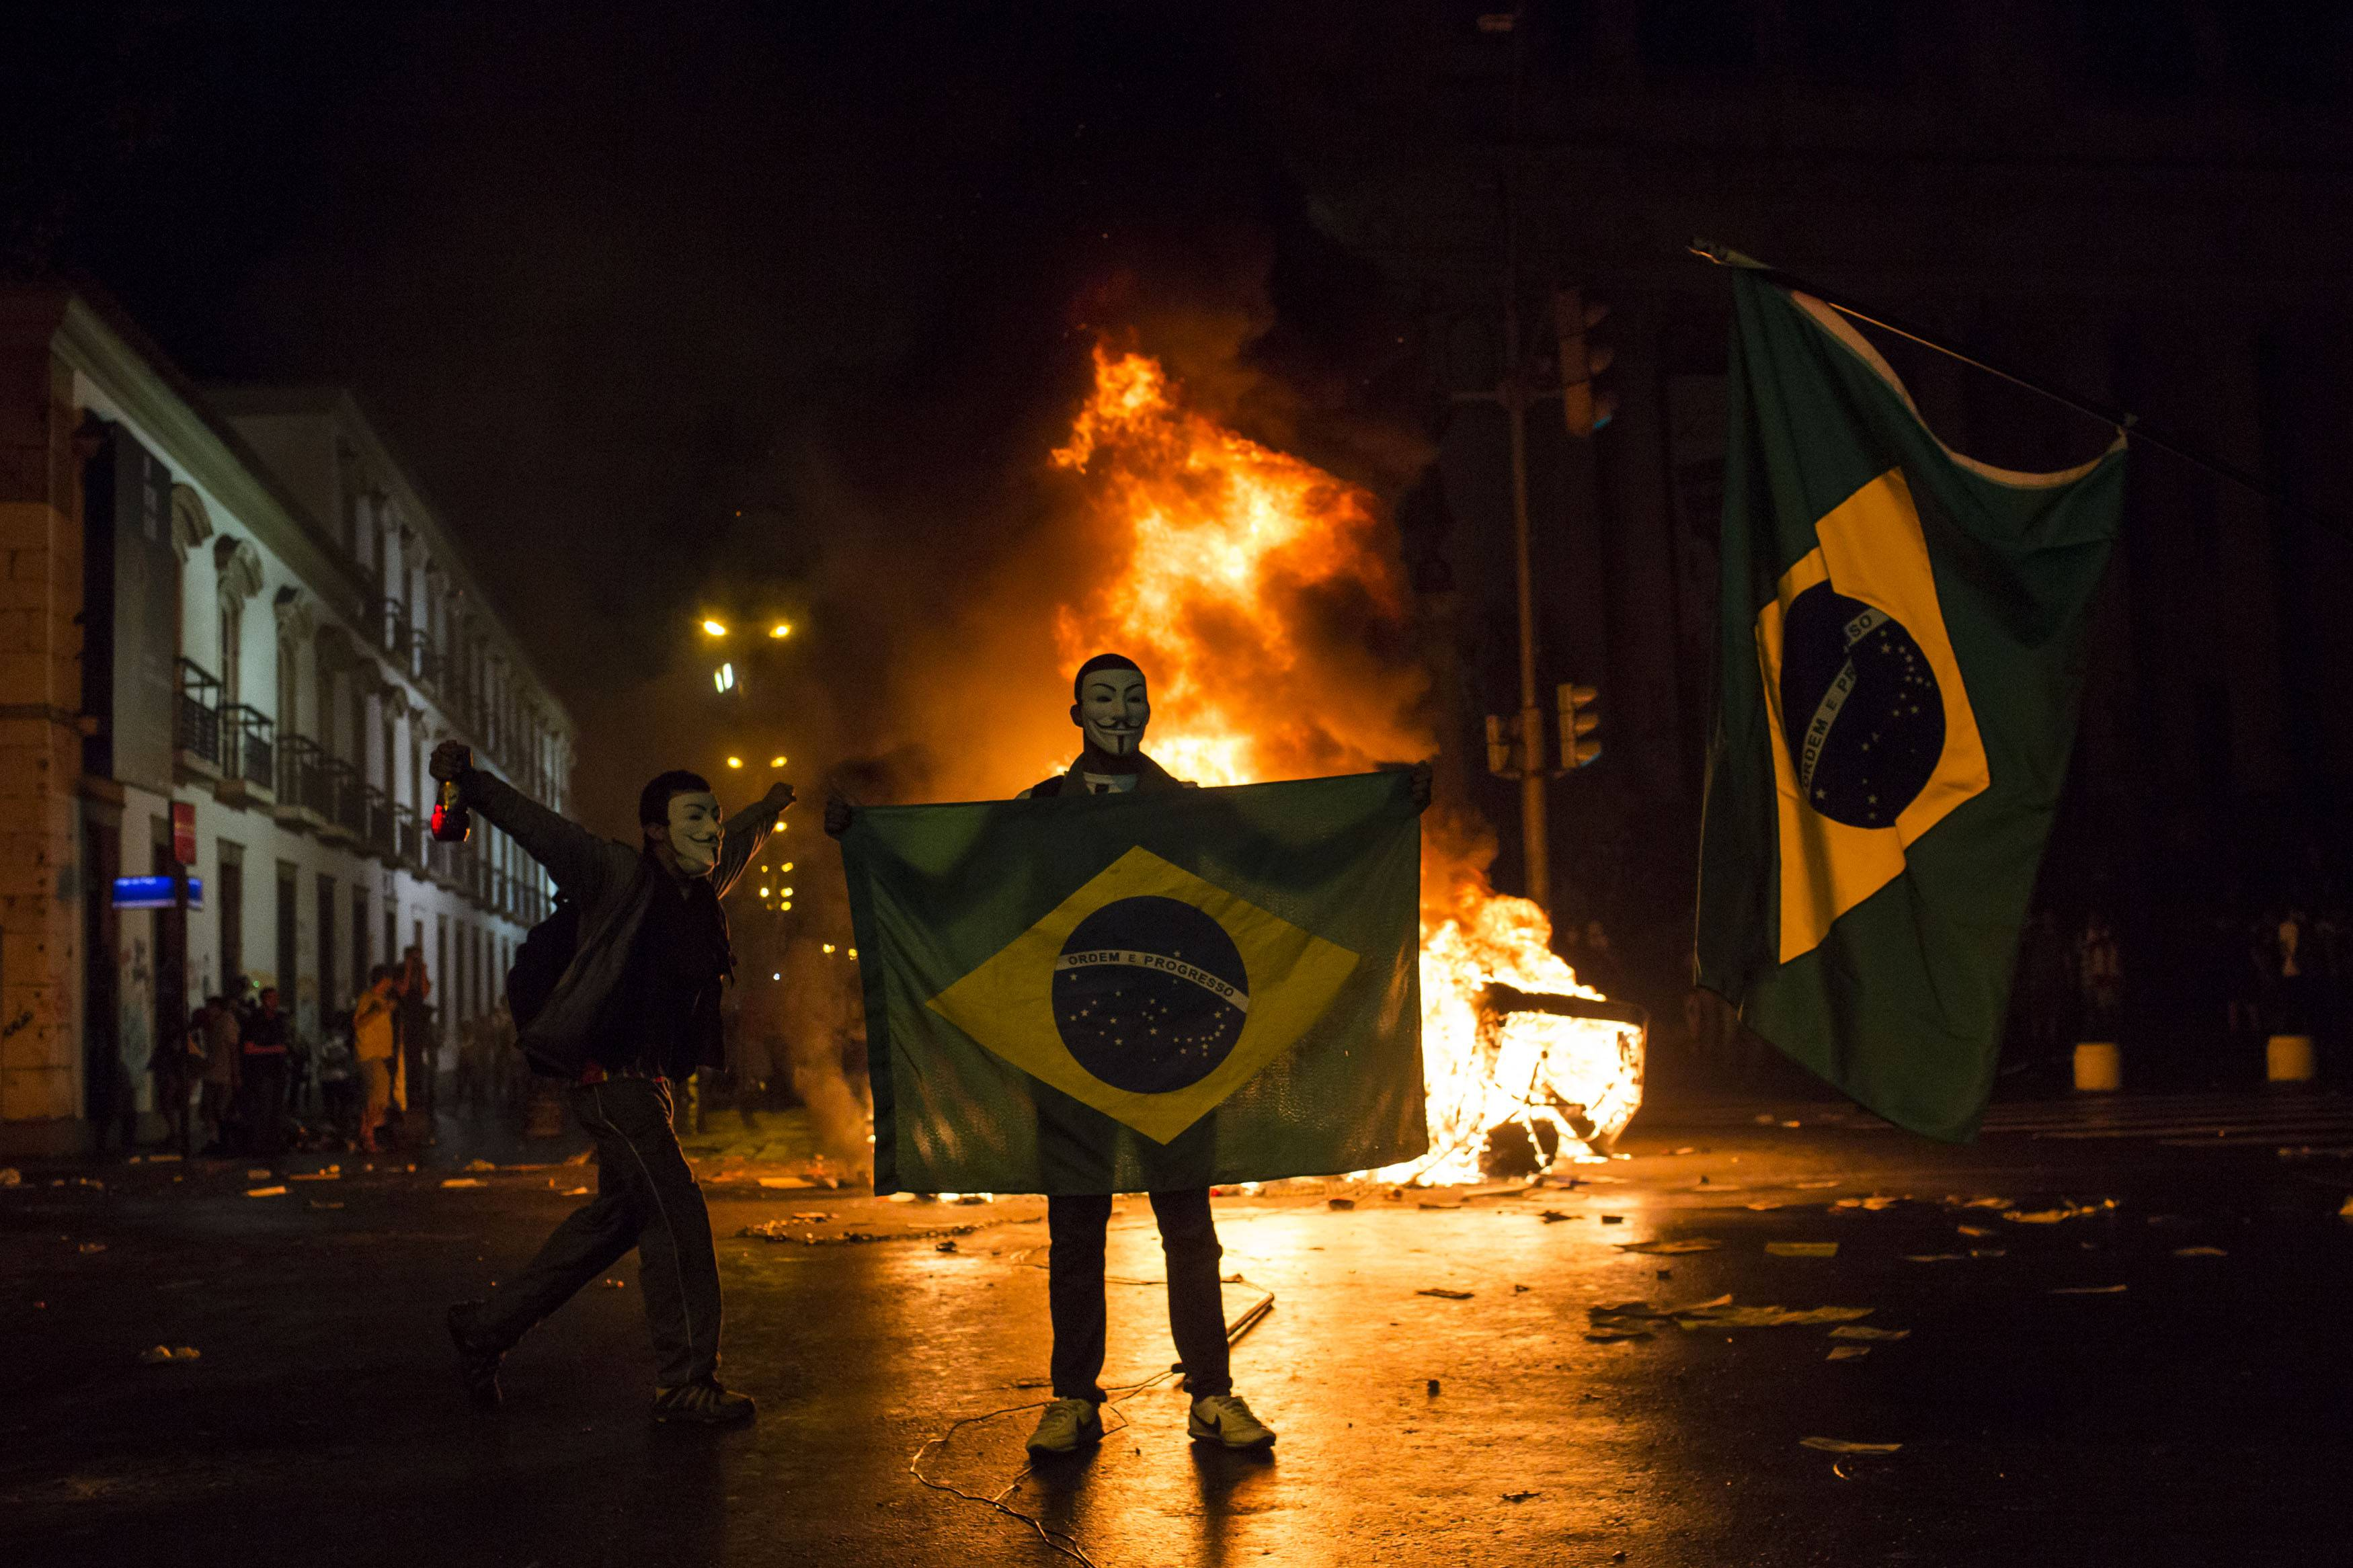 A demonstrator holds a Brazilian flag in front of a burning barricade during a protest in Rio de Janeiro. Brazil. In a poll last year, more than three-fourths of Brazilians said they're certain corruption has infused the World Cup. Their anger fueled widespread and often violent anti-government protests last June that sent more than 1 million Brazilians into the street during FIFA's Confederations Cup soccer tournament.